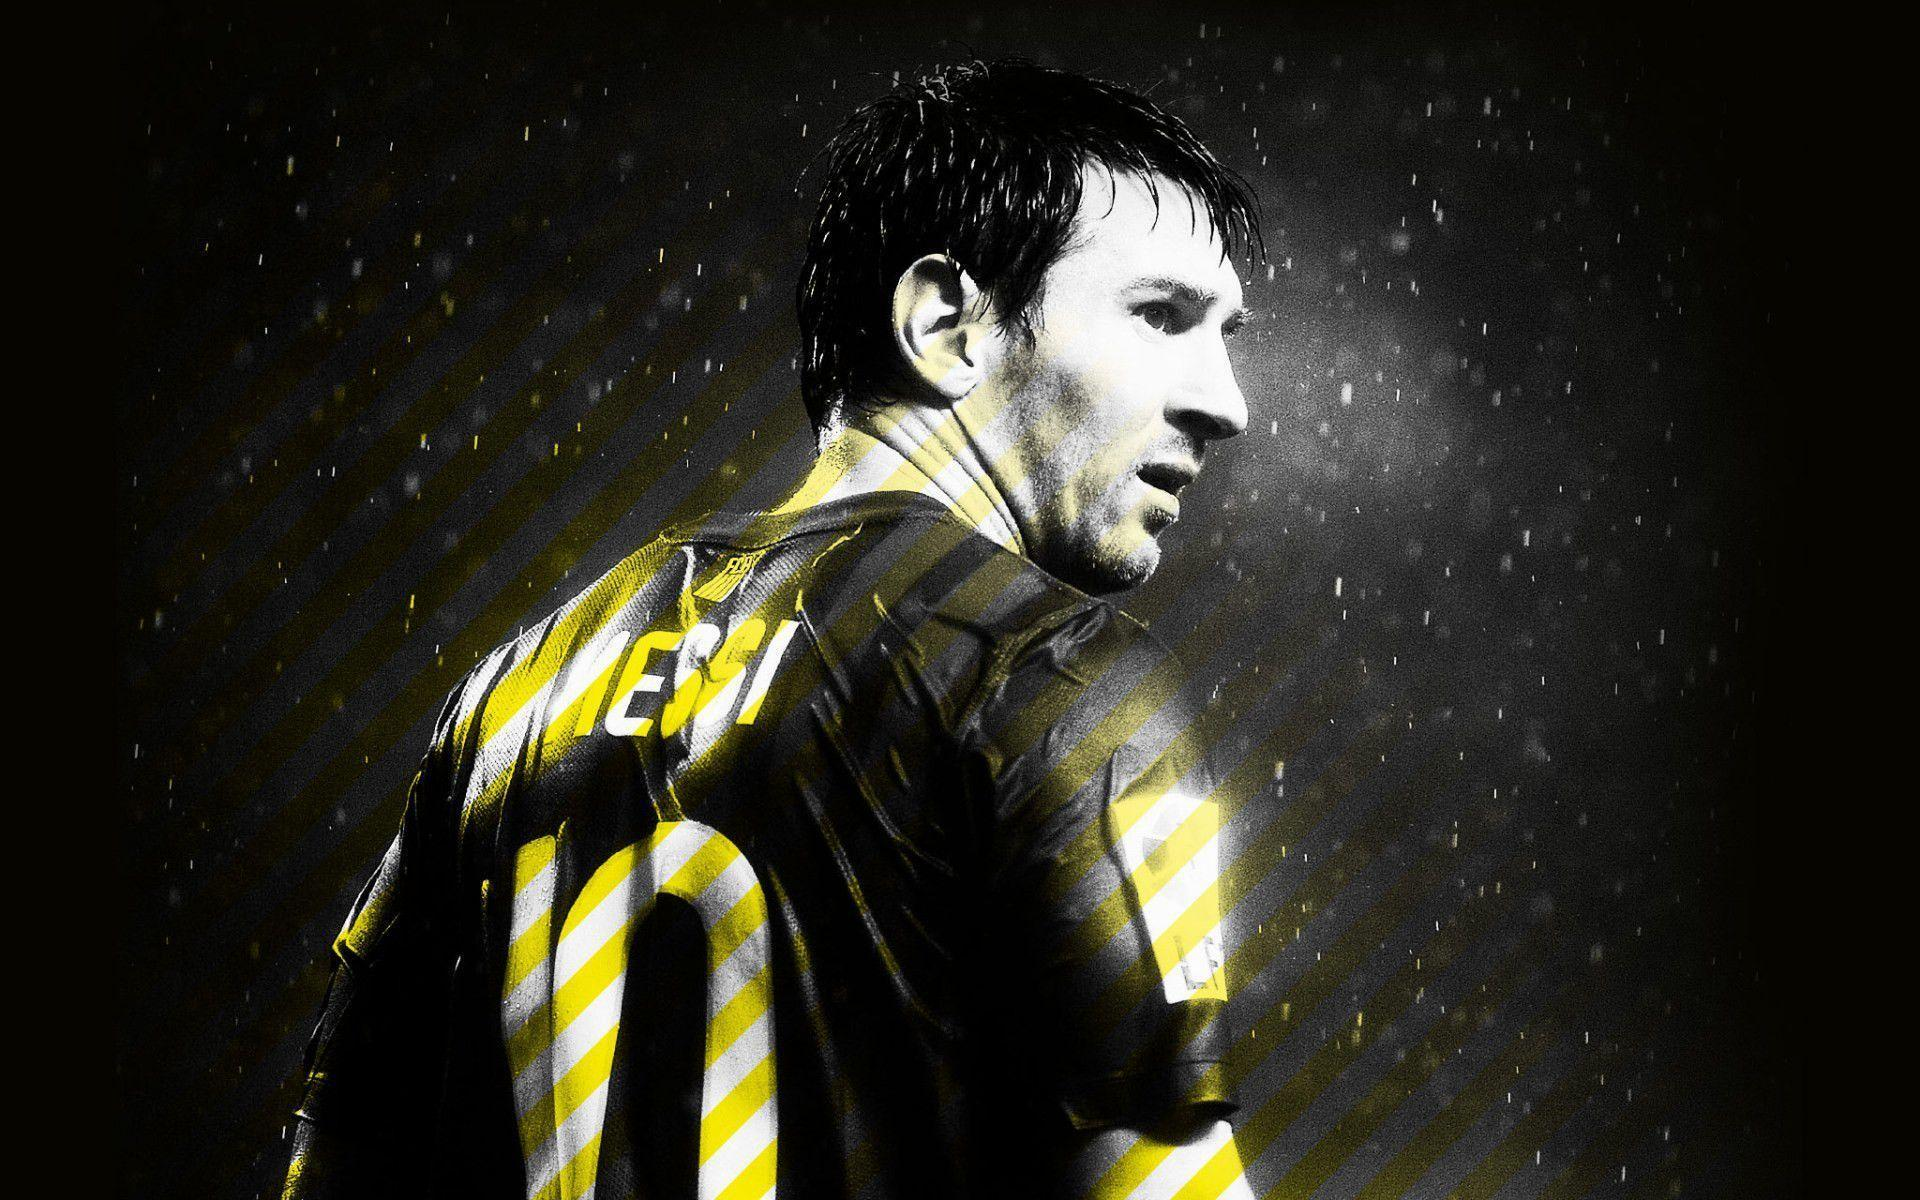 Messi Wallpapers 75 Cool - Desktopwallpapers.